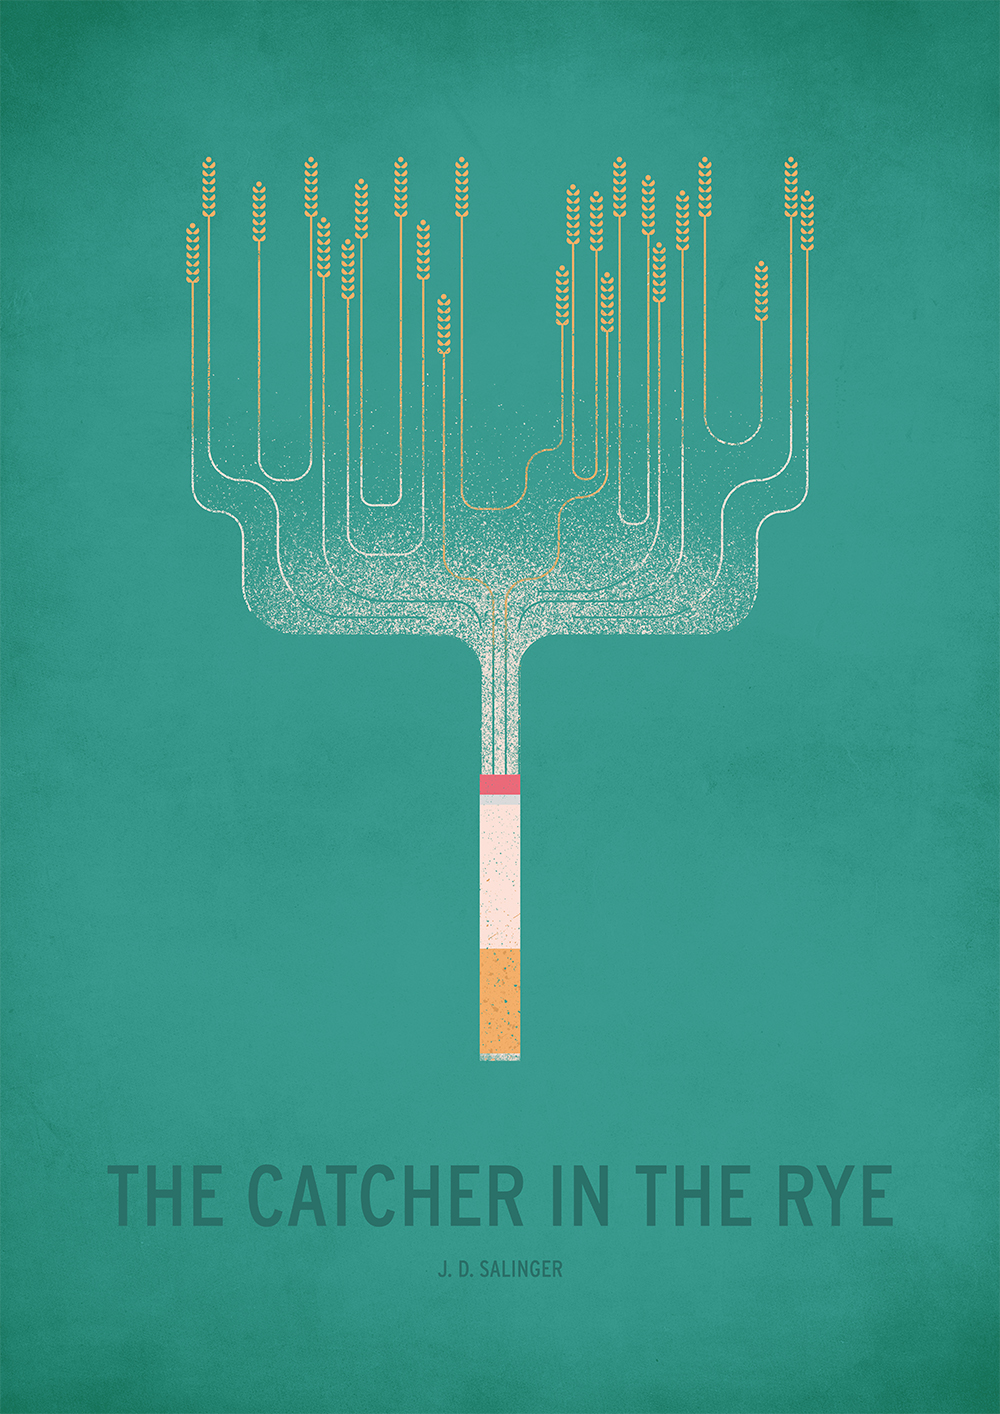 The Cather in the Rye_Minimal large